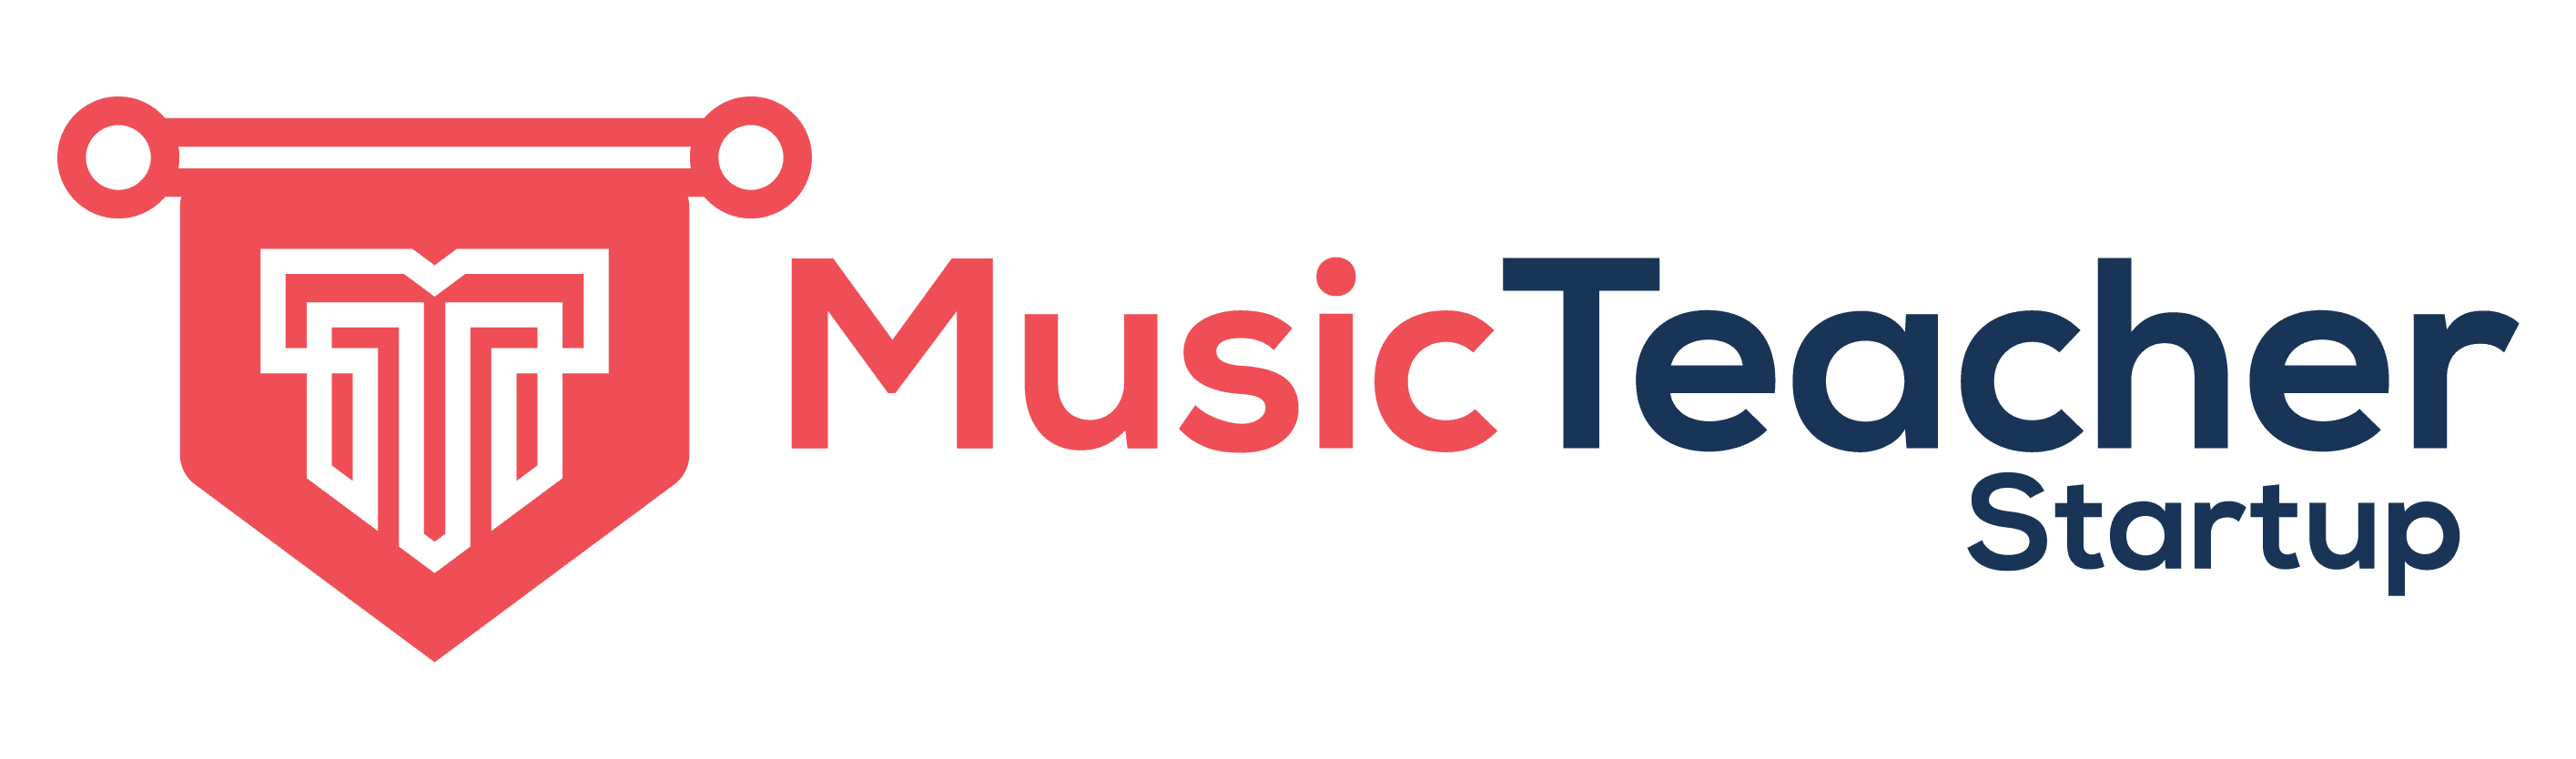 music teacher startup course in TopMusicPro Evolution